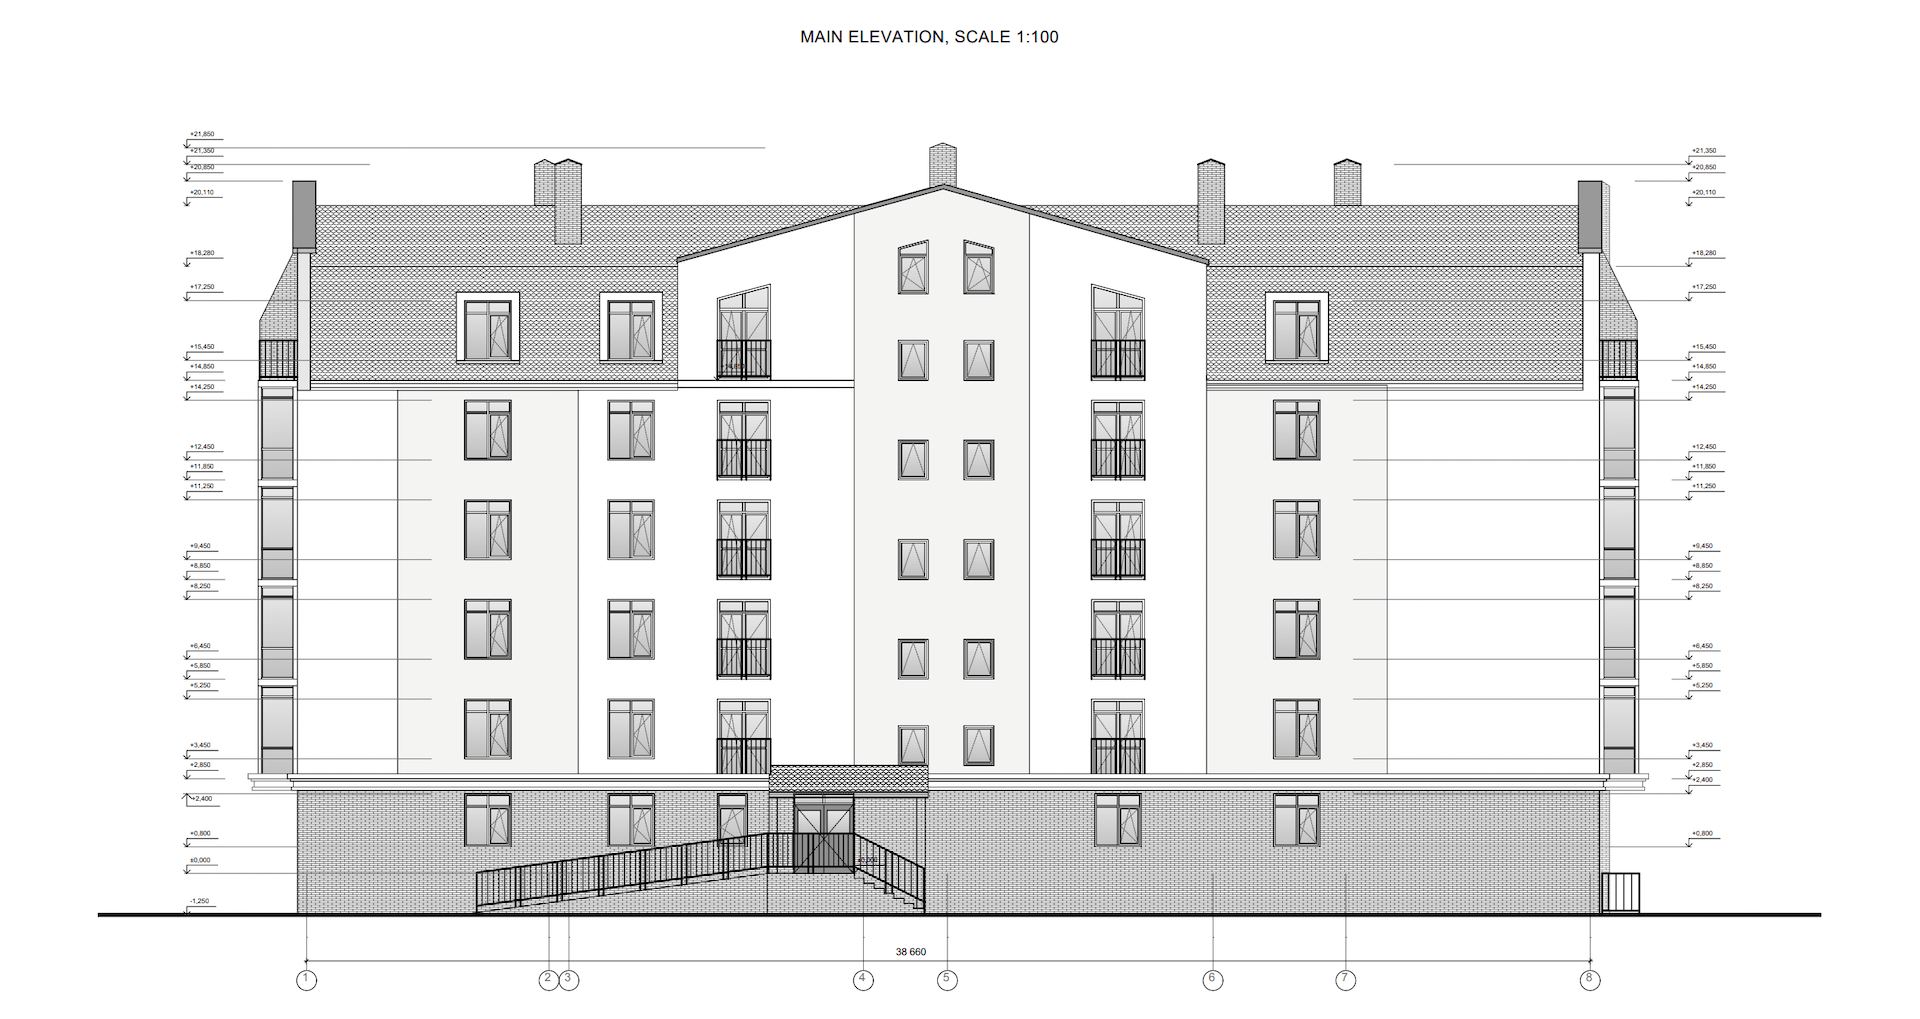 Architectural Drawing as a Reference for 3D Modeling